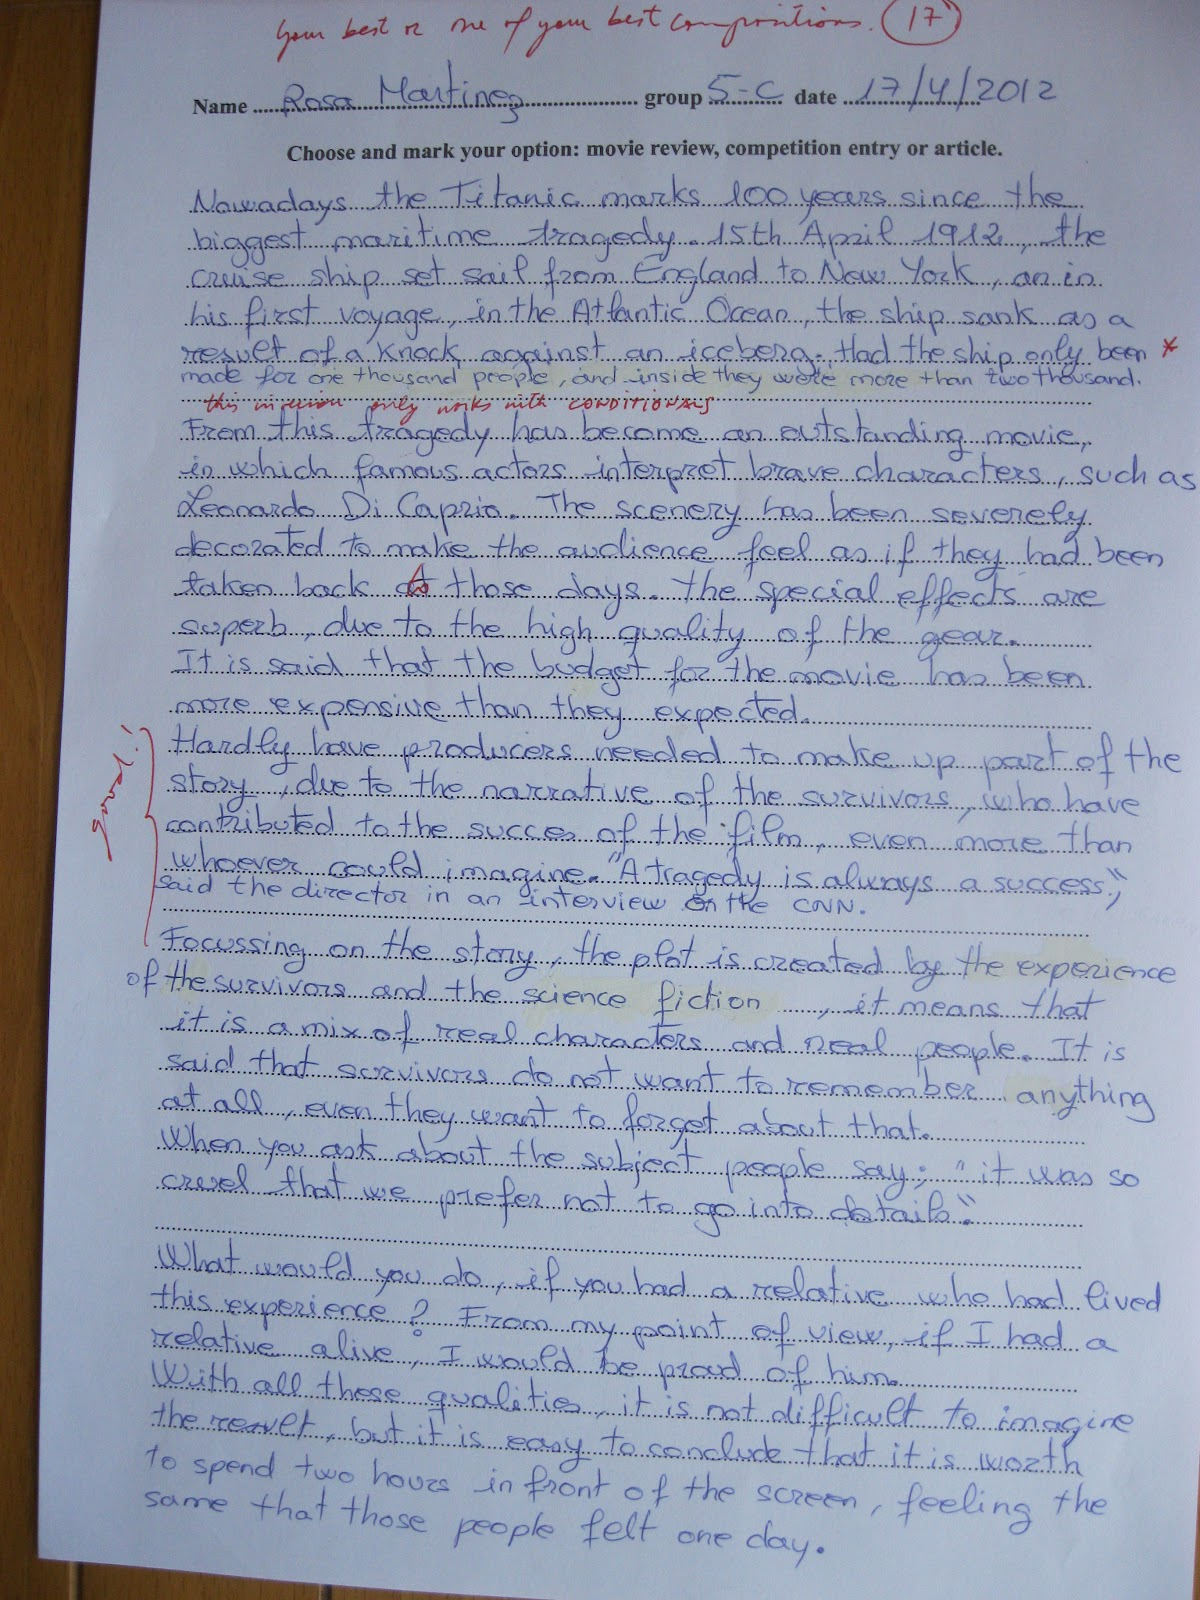 5 paragraph essay about titanic Descriptive essay about titanic february 5, 2018 uncategorized hermeneutic dissertation 737ng cockpit descriptive essay, apwh essay help john dickinson essay dana gioia essay my husband is my best friend essay athena role in the iliad essay iima pgpx essays on education.